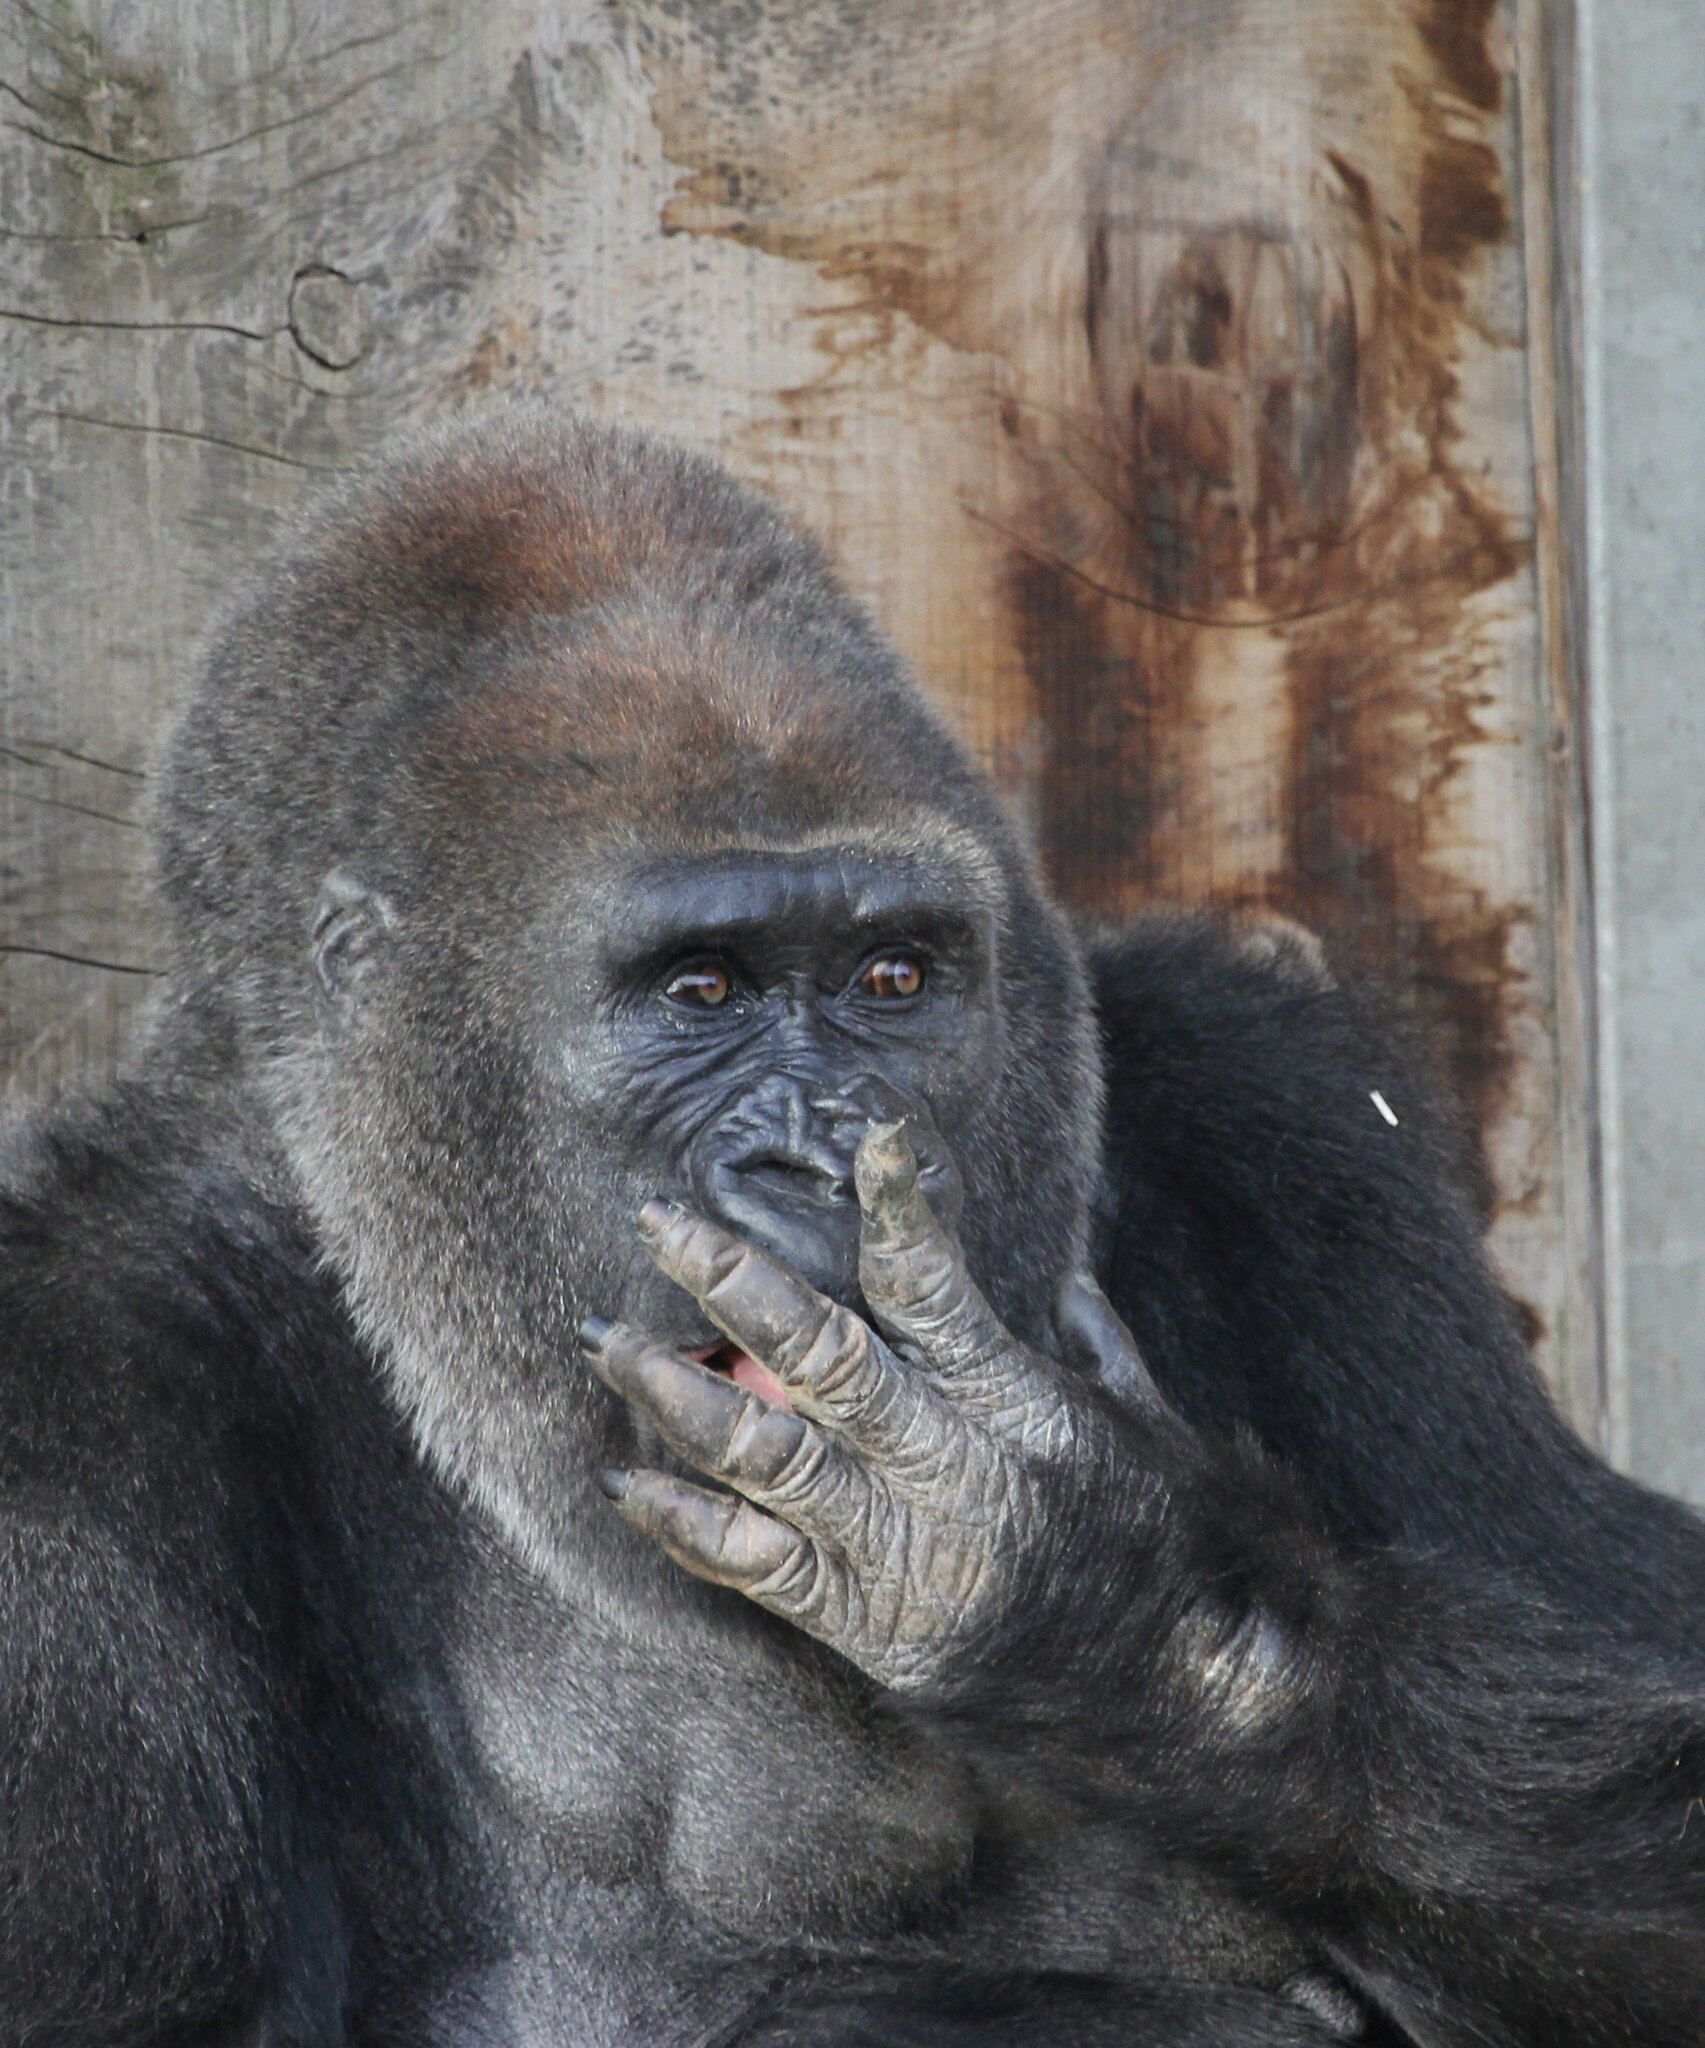 Stifling a Yawn - Gorilla | Flickr - Photo Sharing!